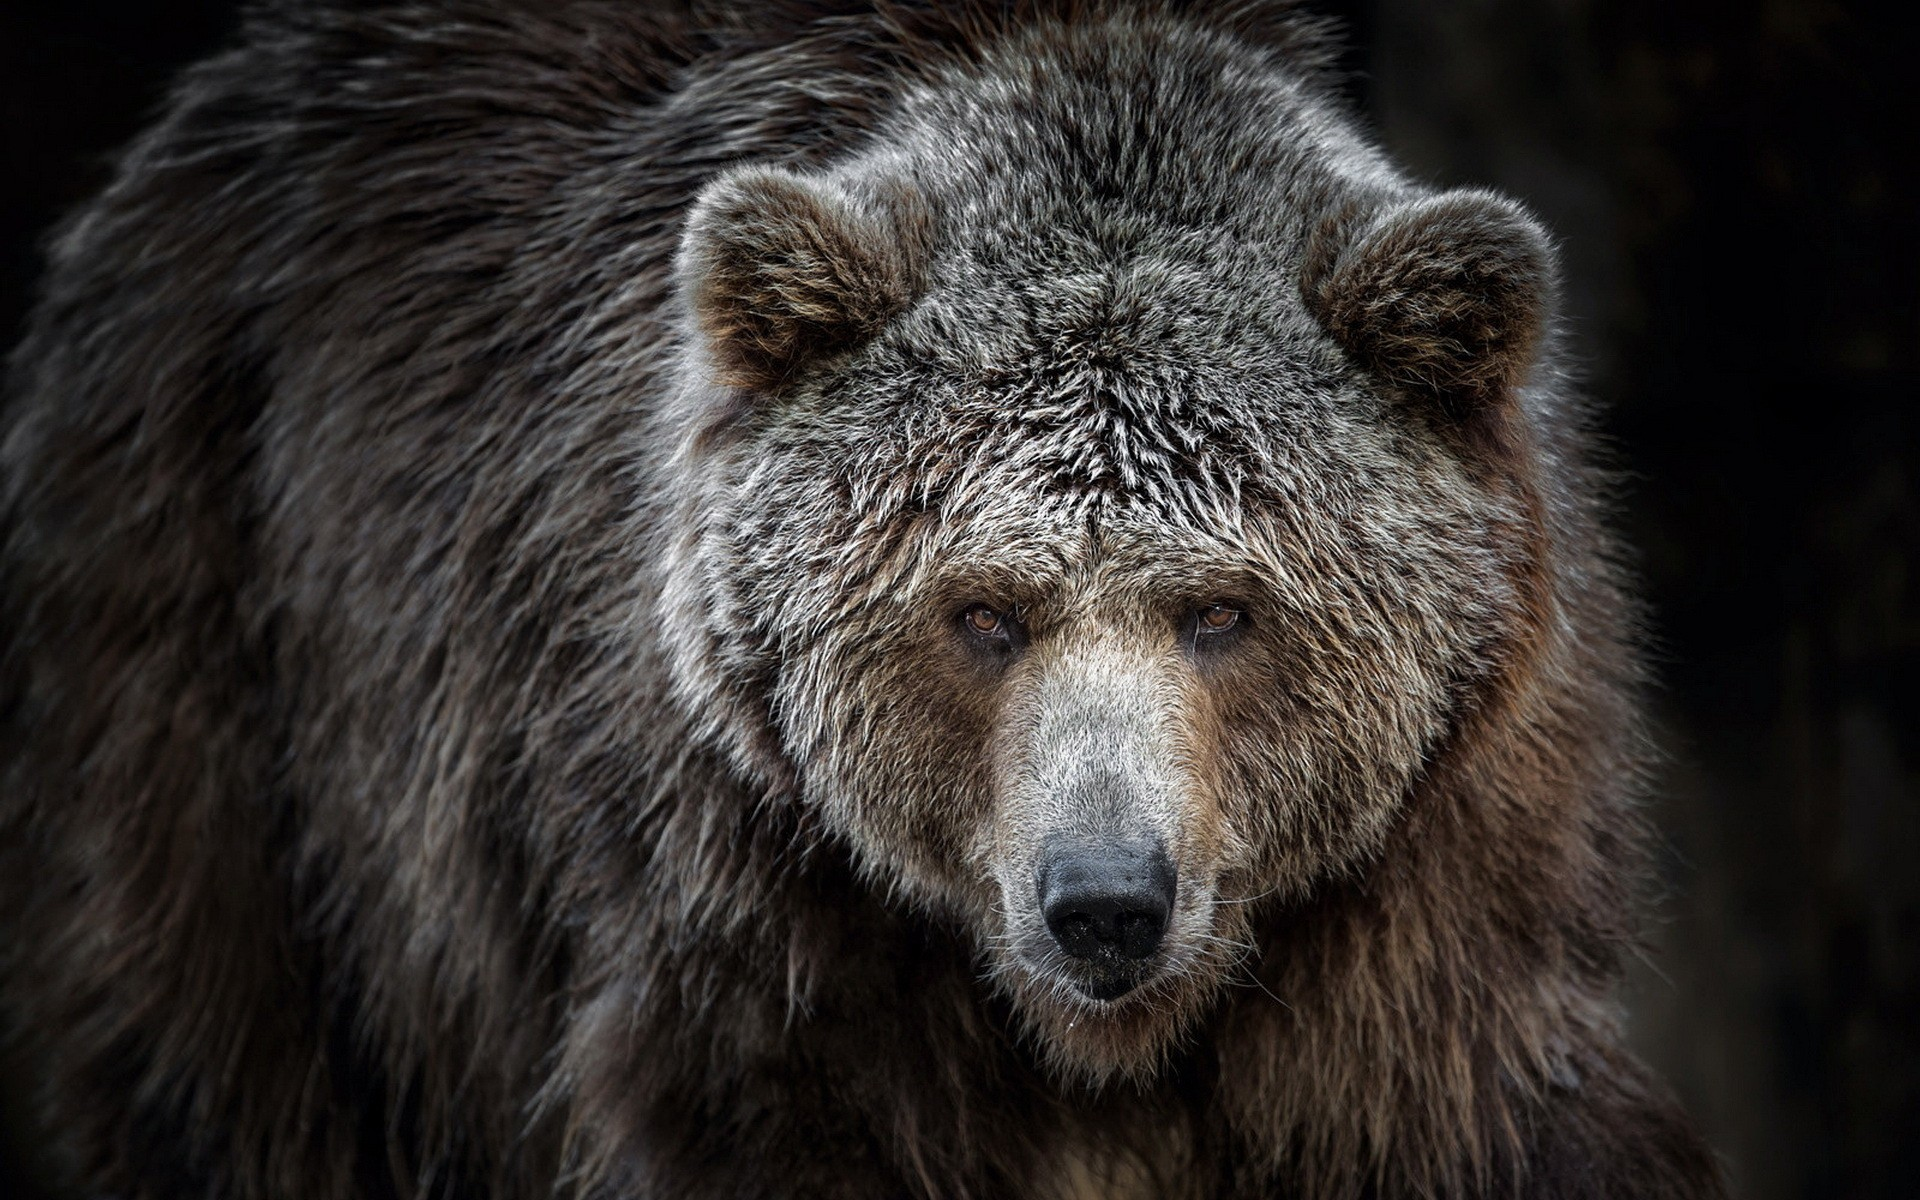 wallpaper animals wildlife bears